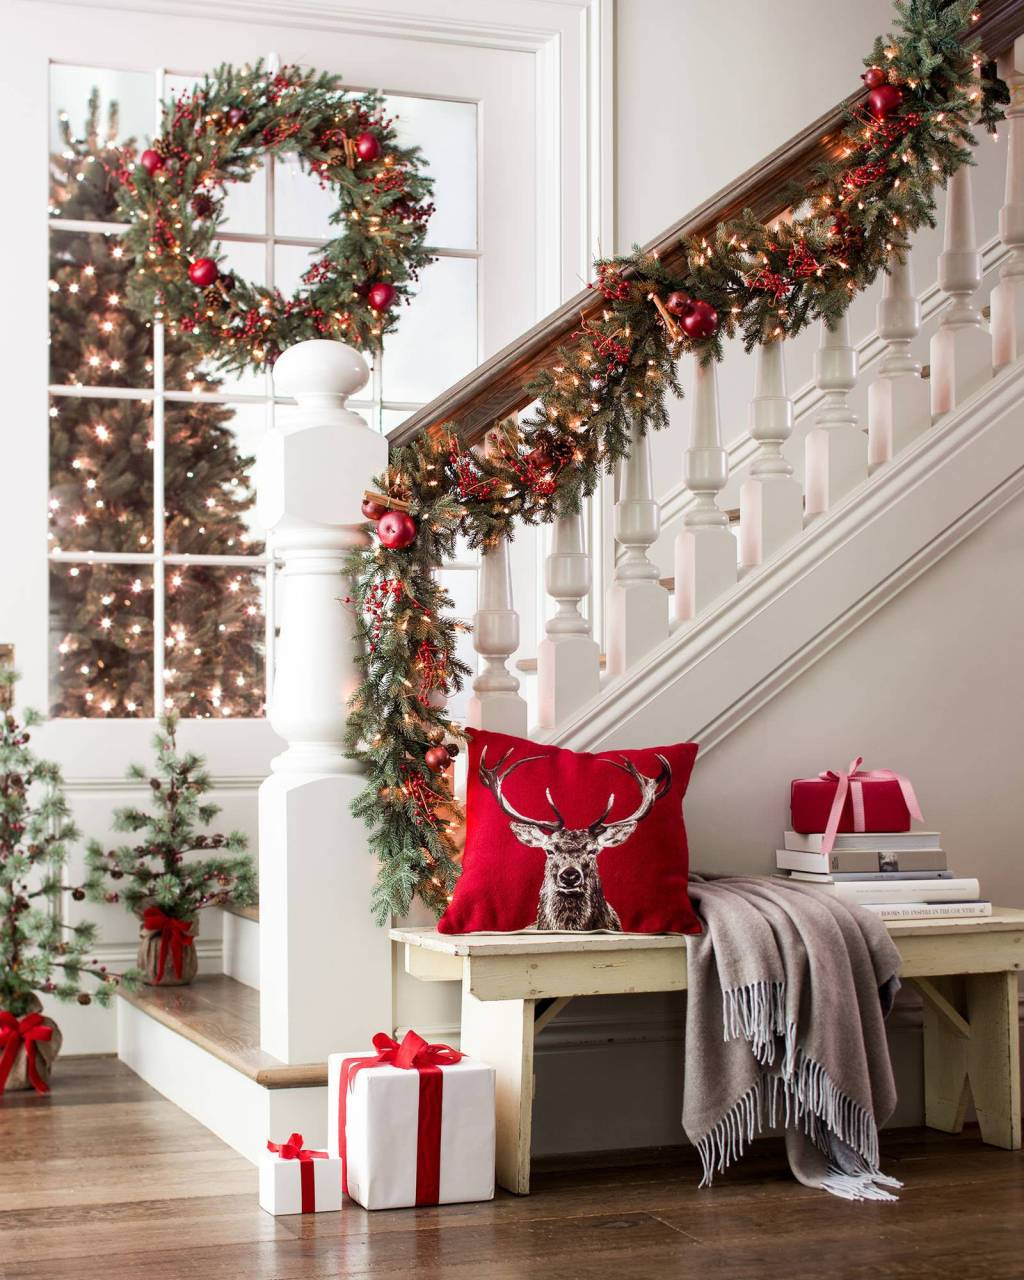 Christmas wreath and garland on stairs